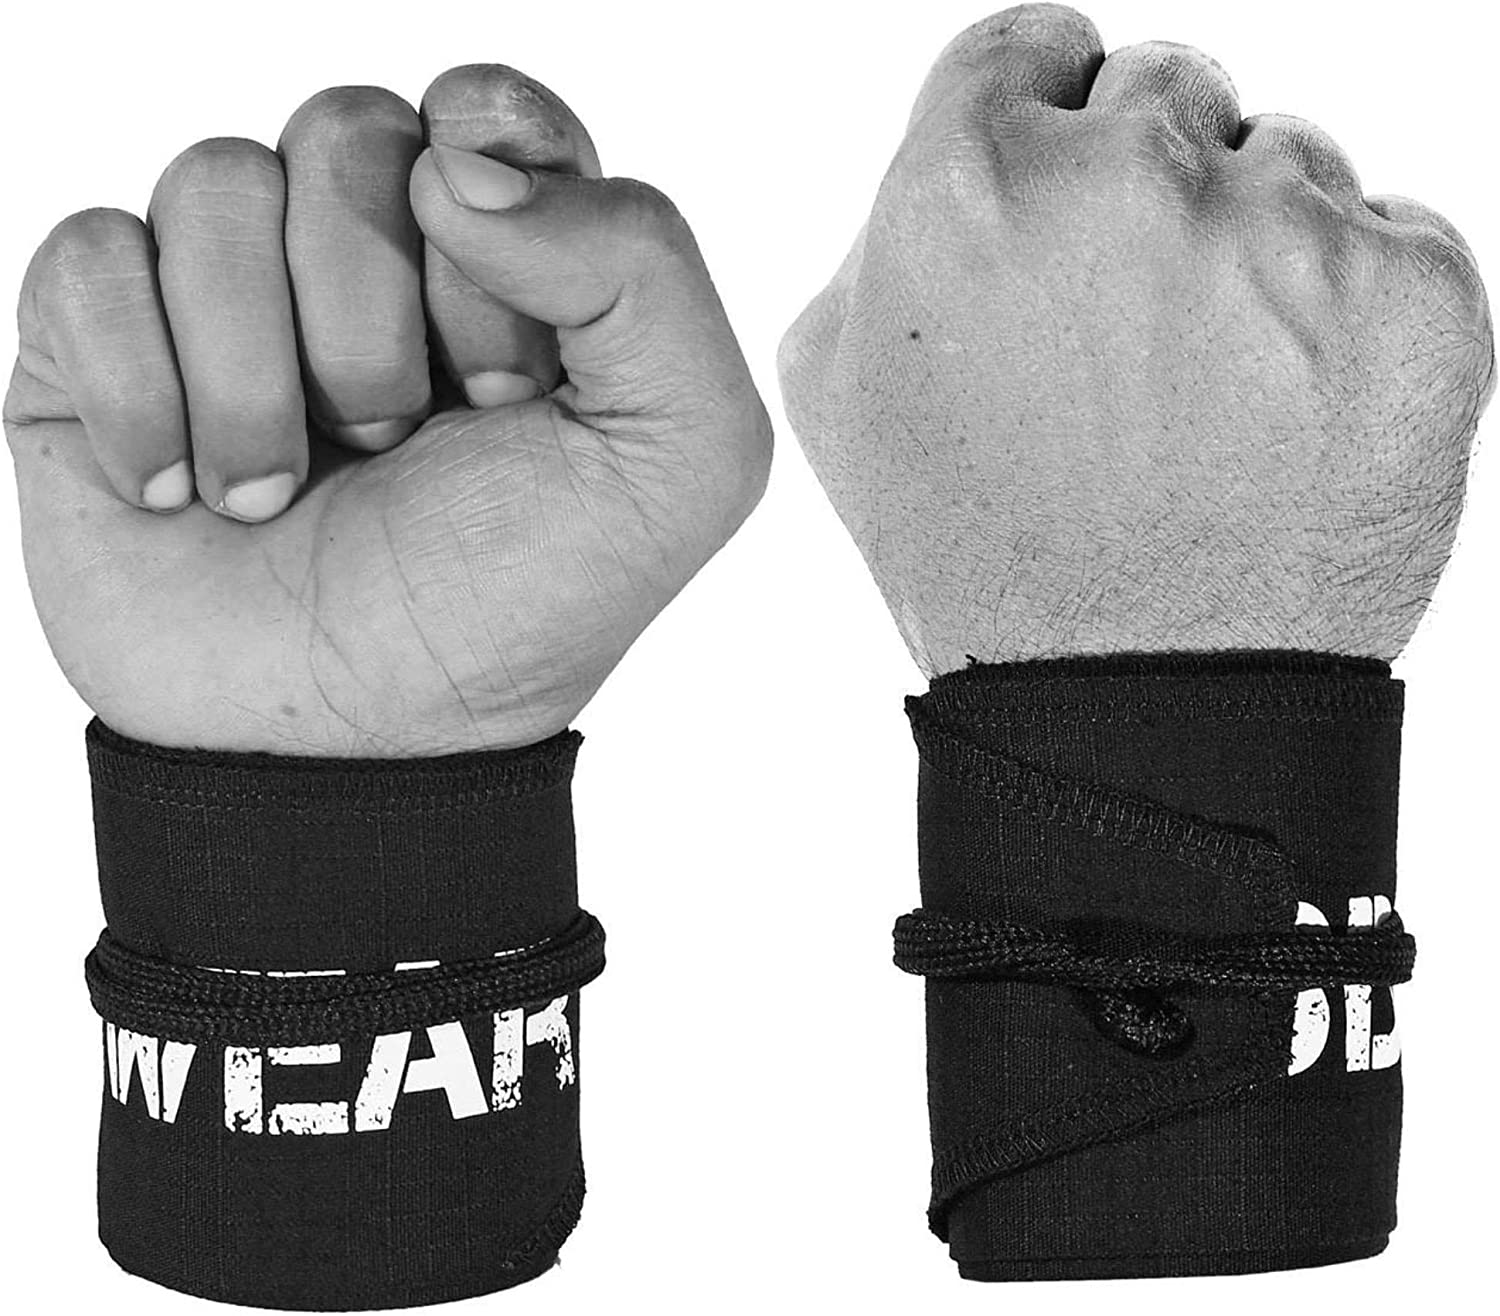 TraininGear Wrist Wraps White Flowers Pink Paracord Crossfit Support Weightlifting Lifting Workout Wrap Training Gear Paracord